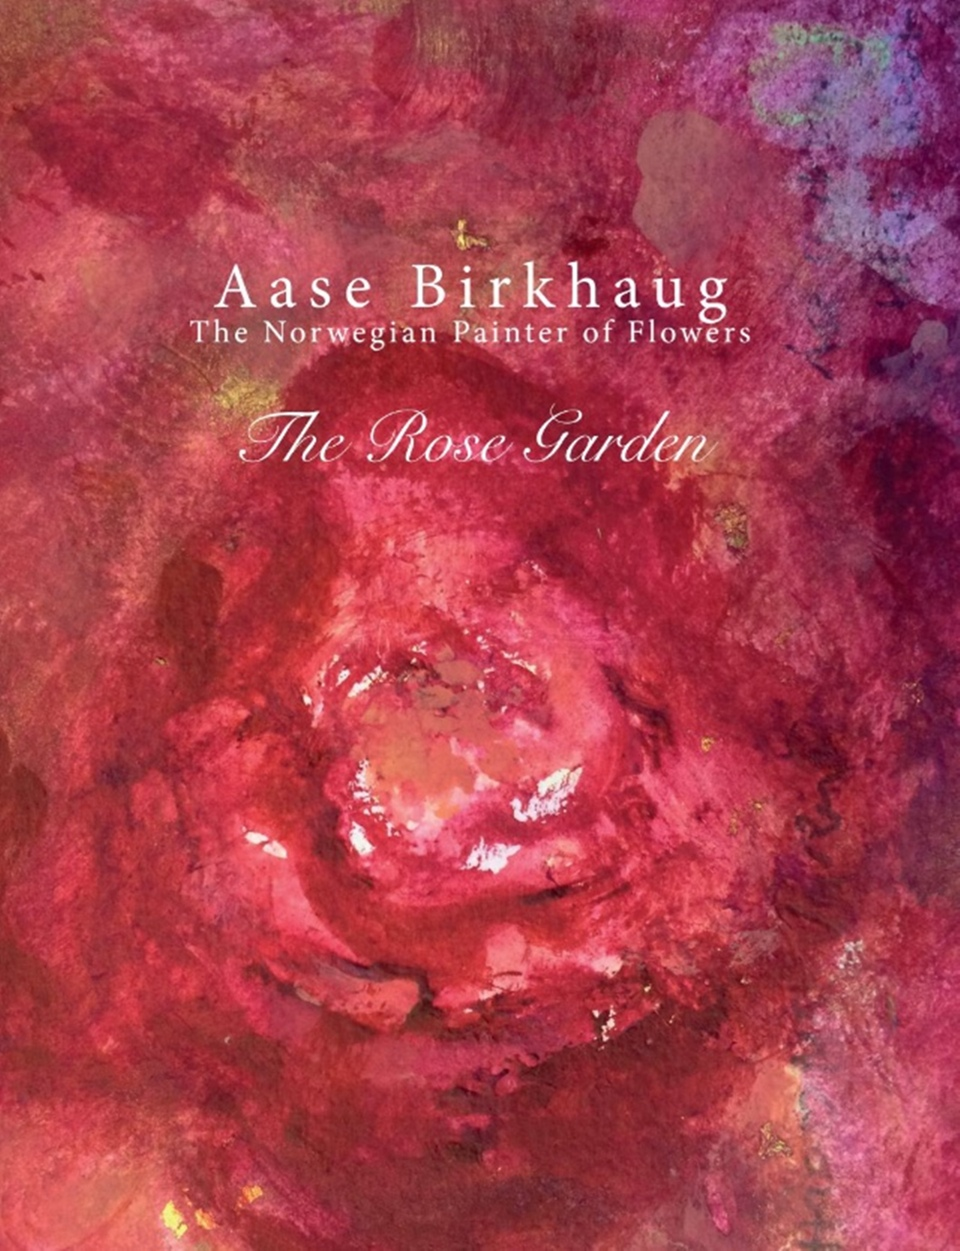 Aase Birkhaug – THE ROSE GARDEN